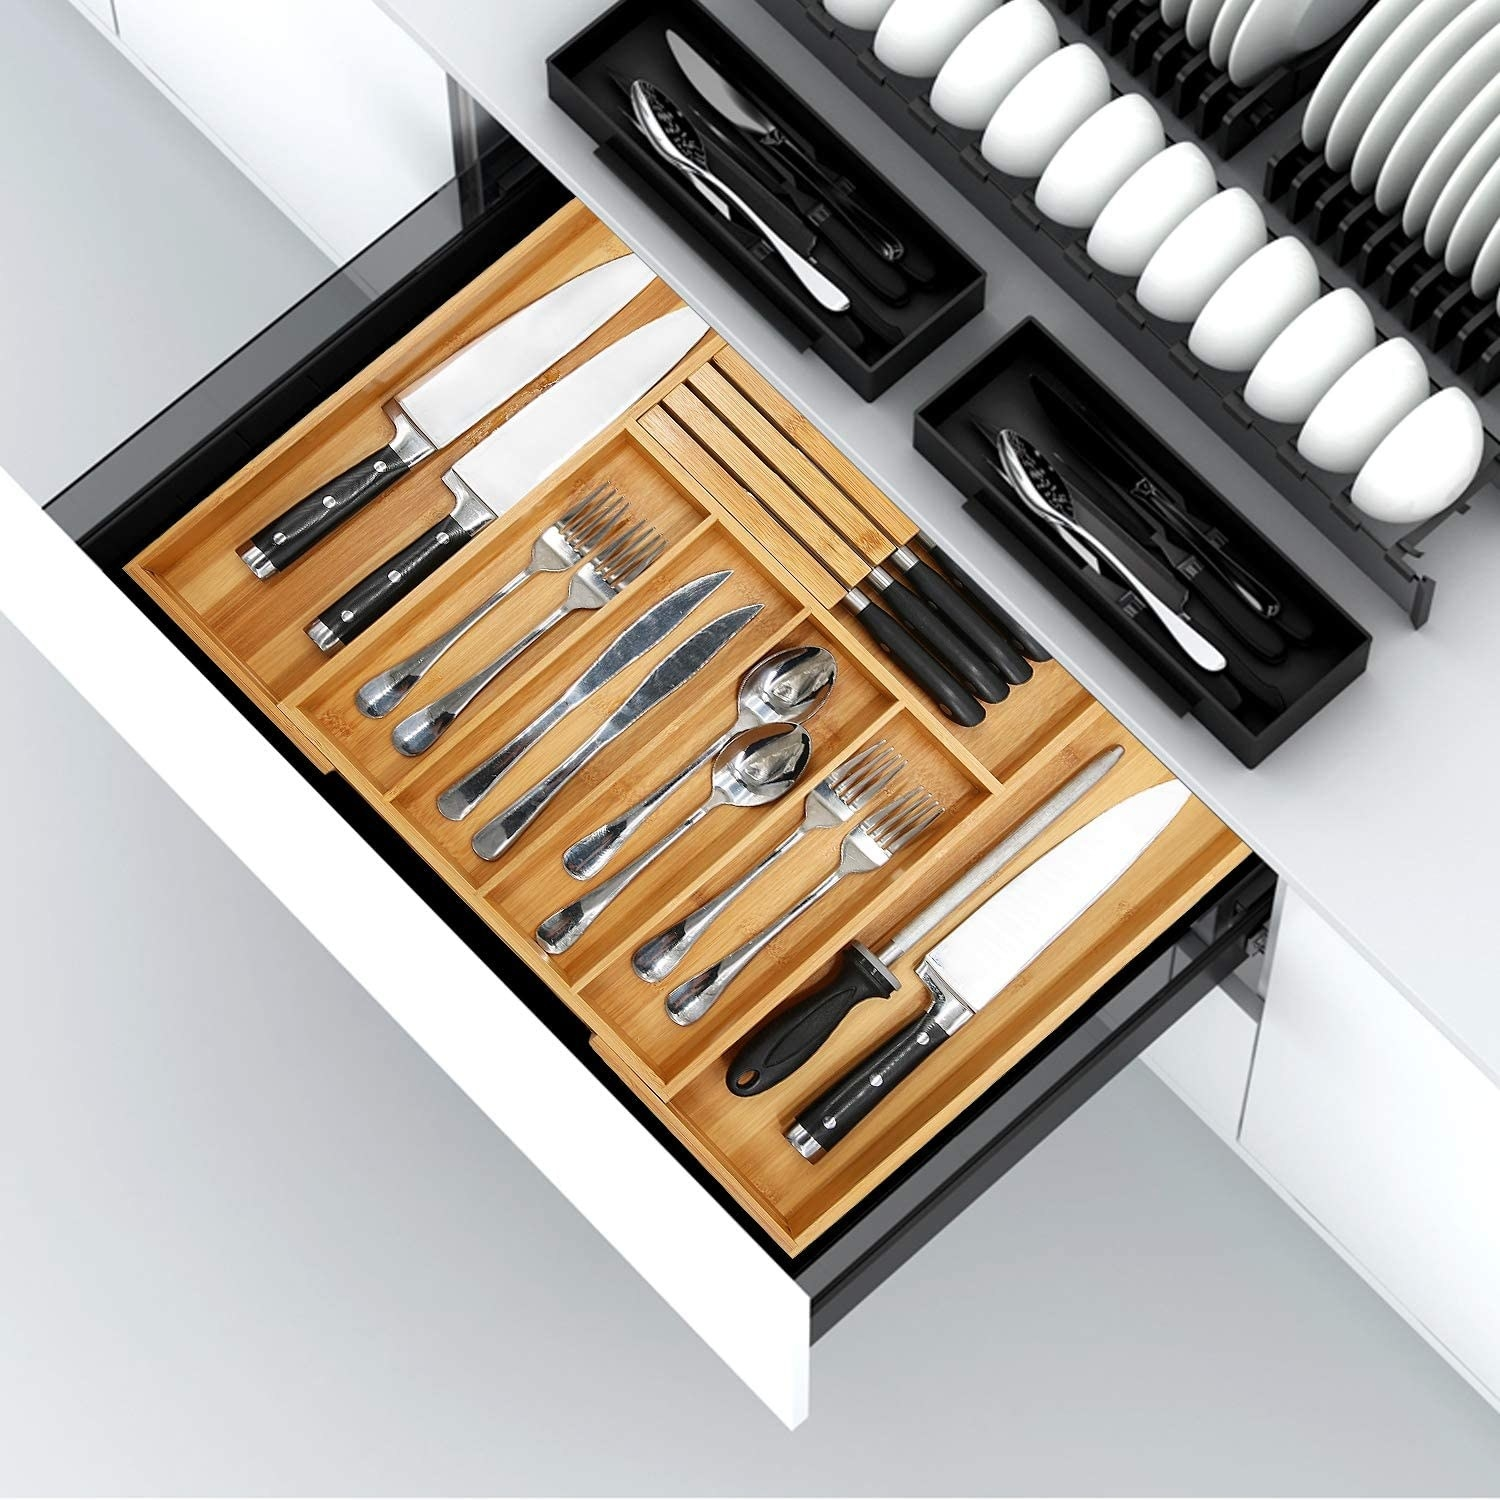 Several knives, forks, and spoons inside the organizer